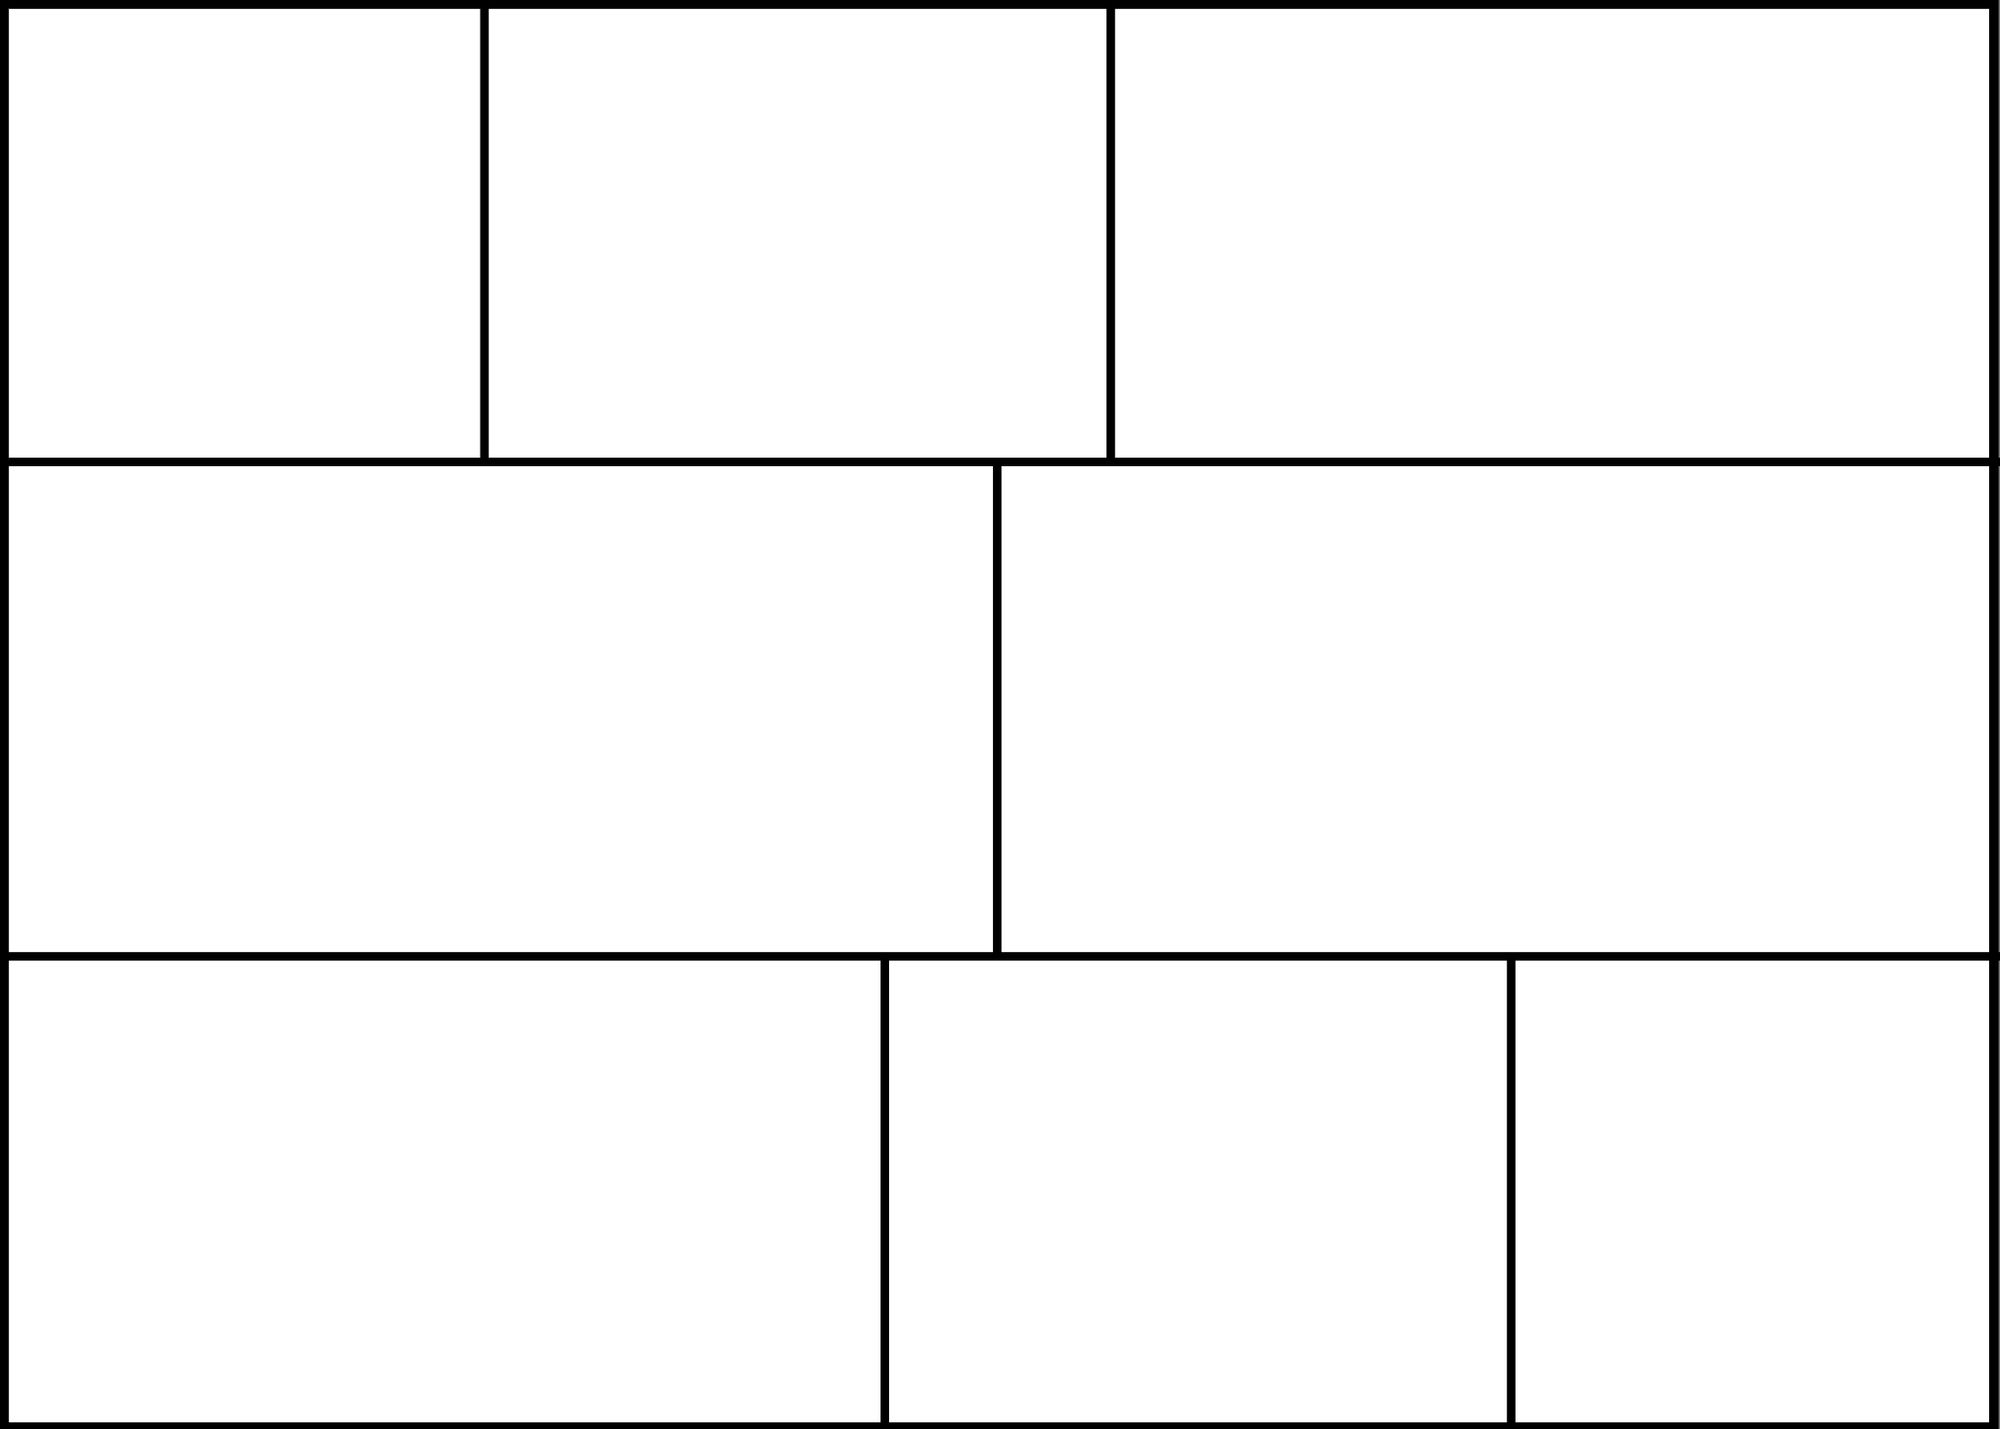 An 8-panel comic strip template with a 7:5 aspect ratio.